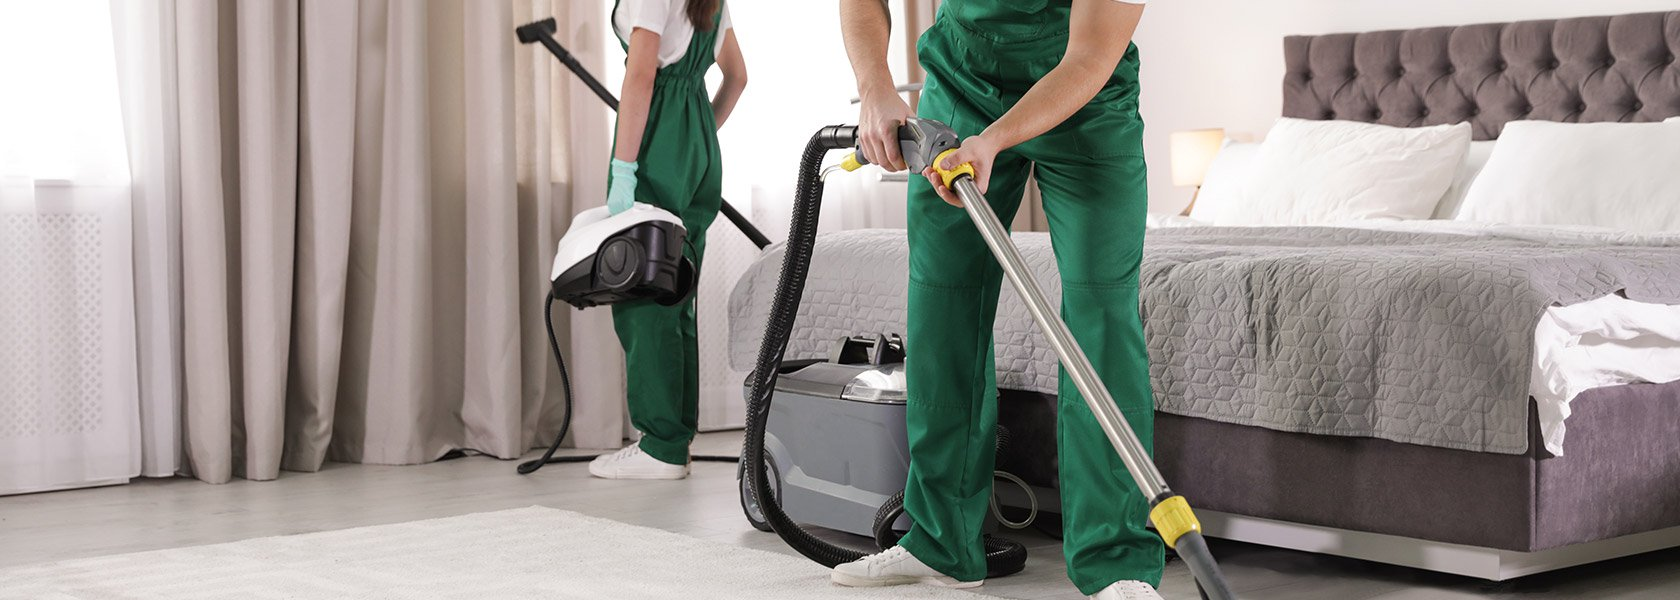 Deep Cleaning Apartment Within an Hour in Dubai and Abu Dhabi